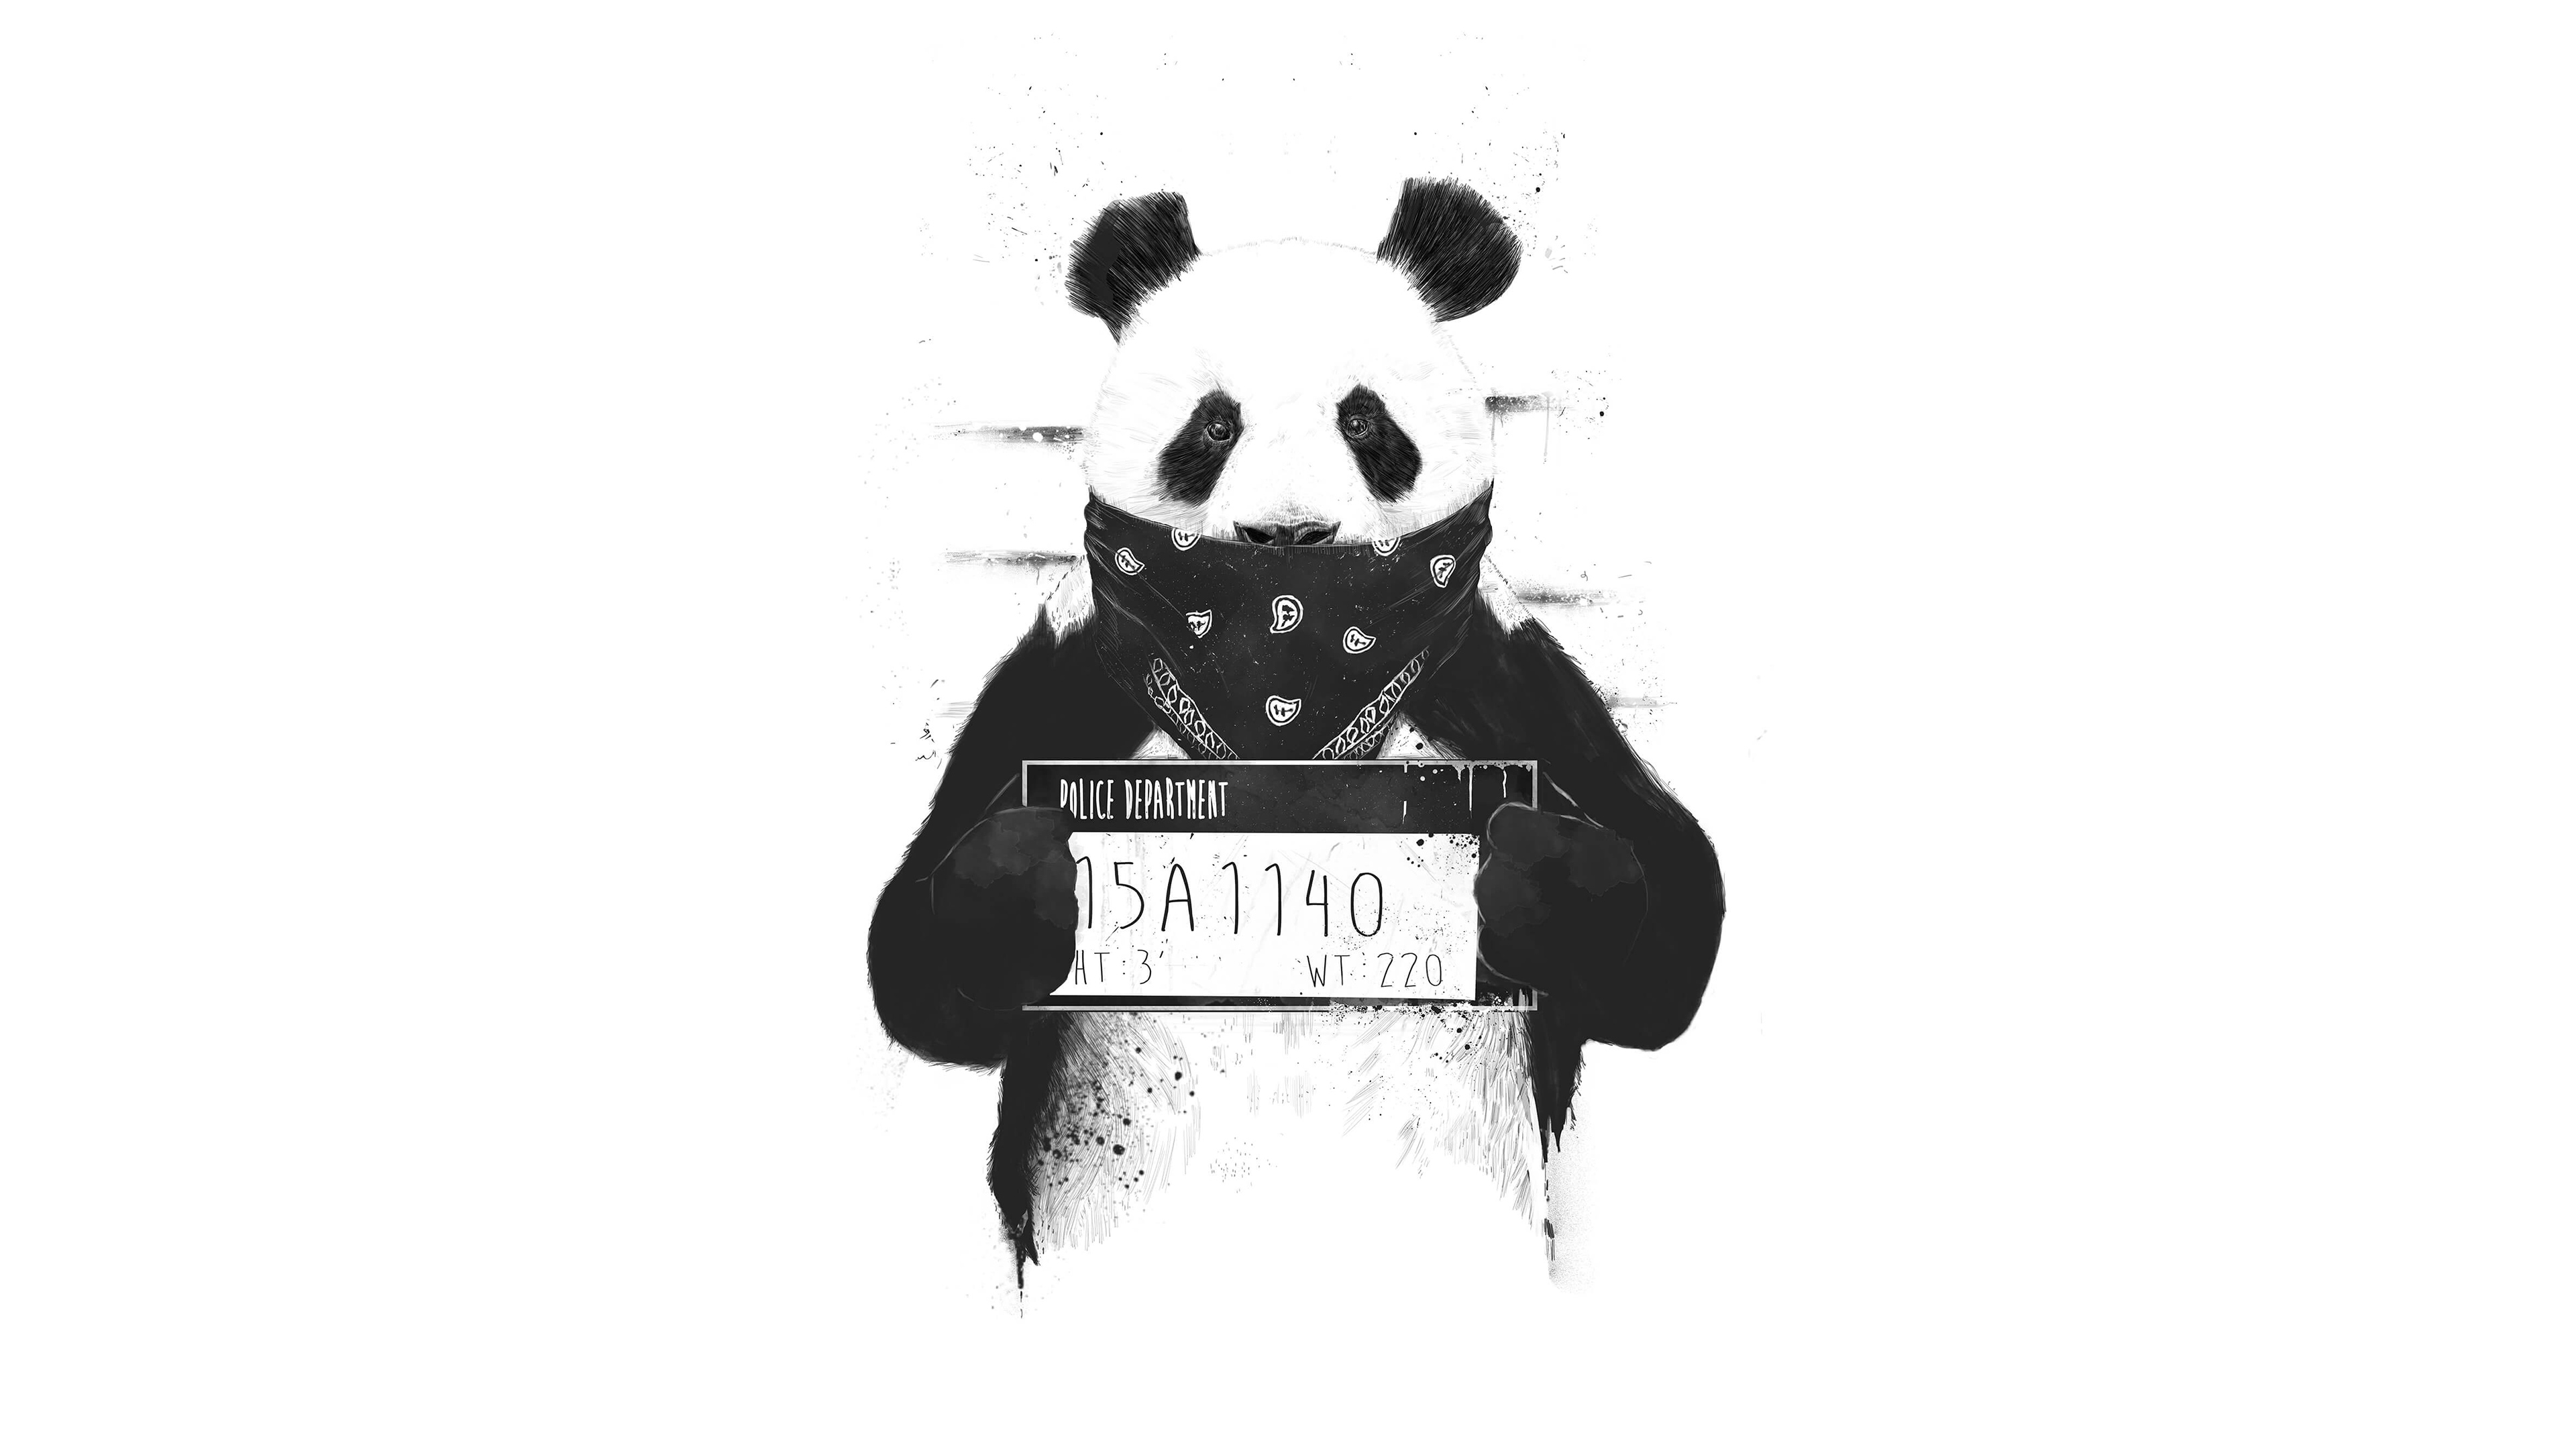 Bad Panda Hd Artist 4k Wallpapers Images Backgrounds